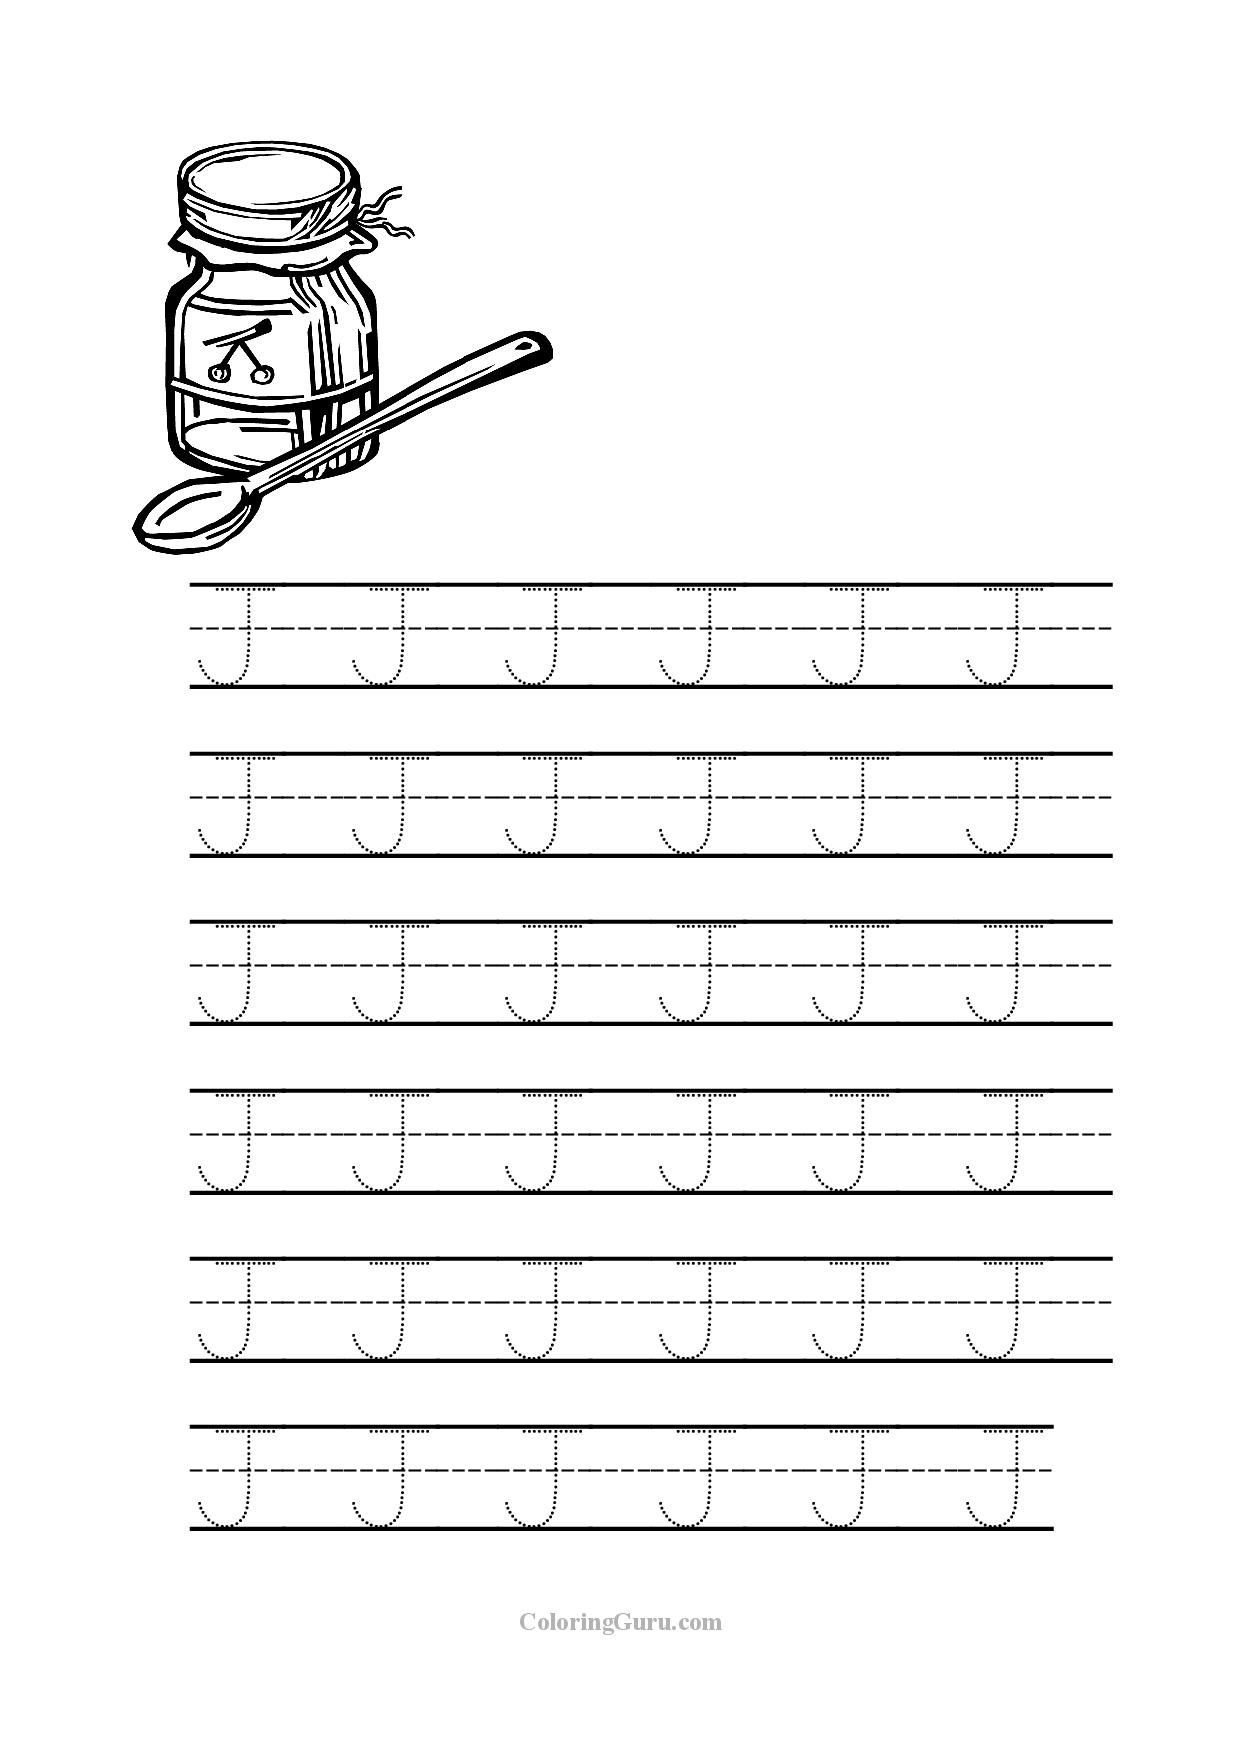 Letter J Worksheets Free Printable Tracing Letter J Worksheets for Preschool